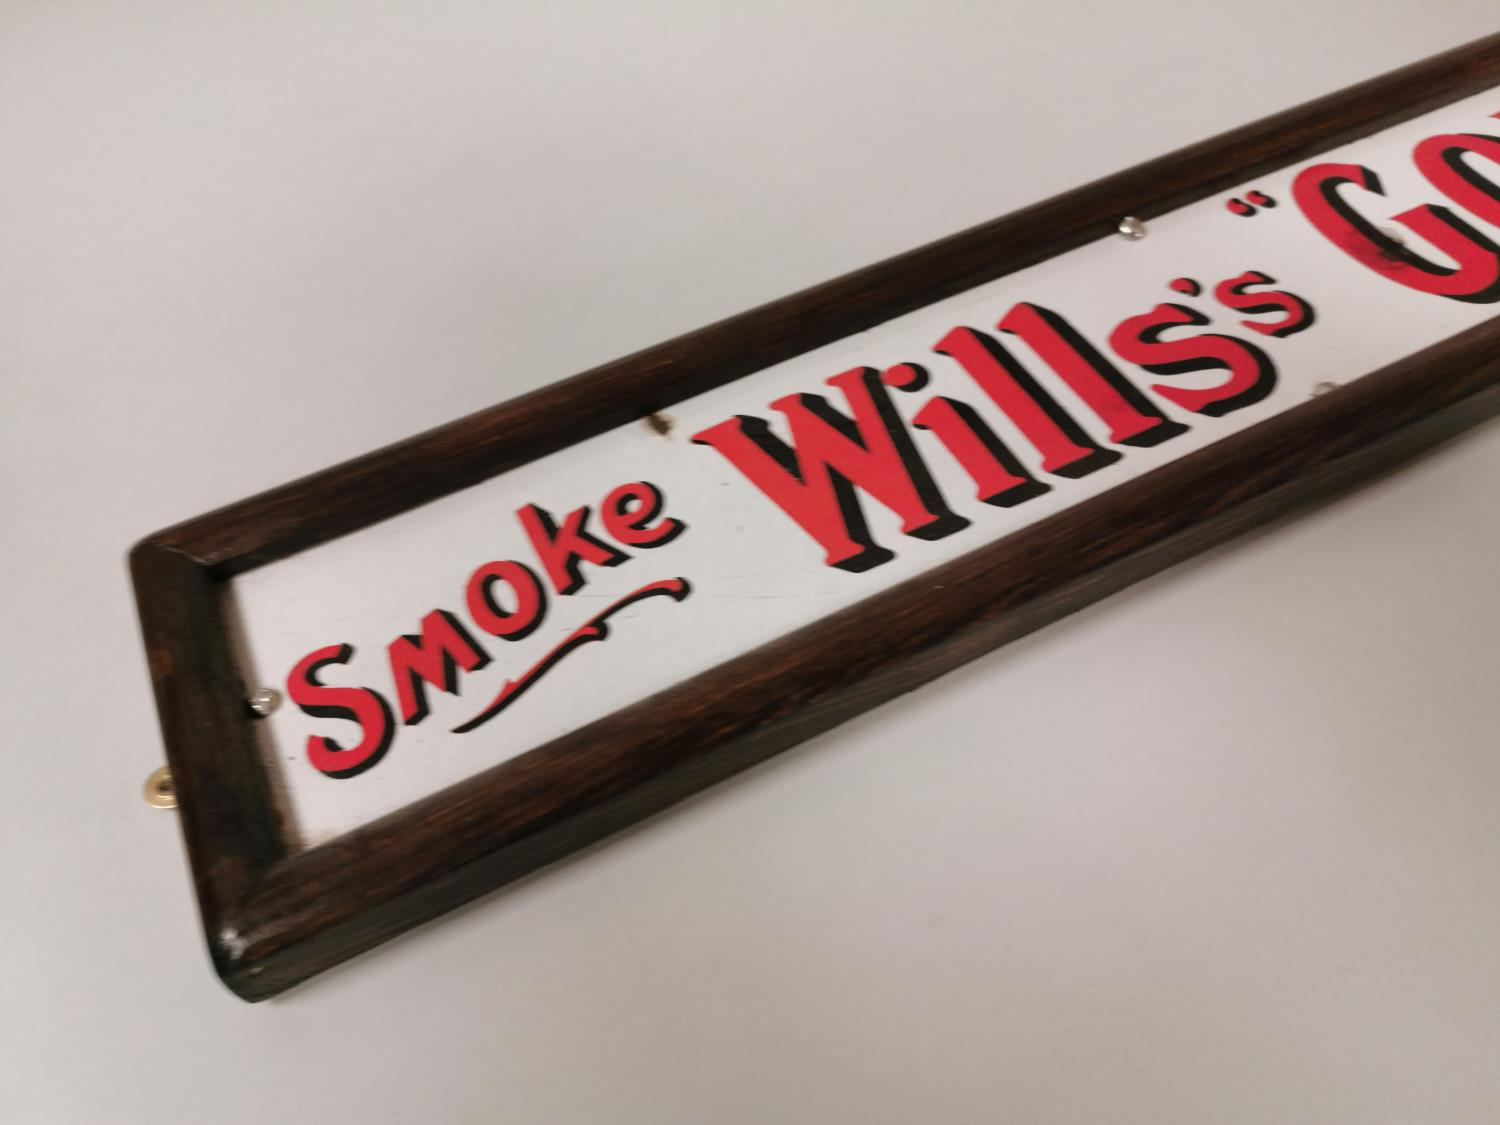 Smoke Will's Cigarettes enamel advertising sign. - Image 2 of 4